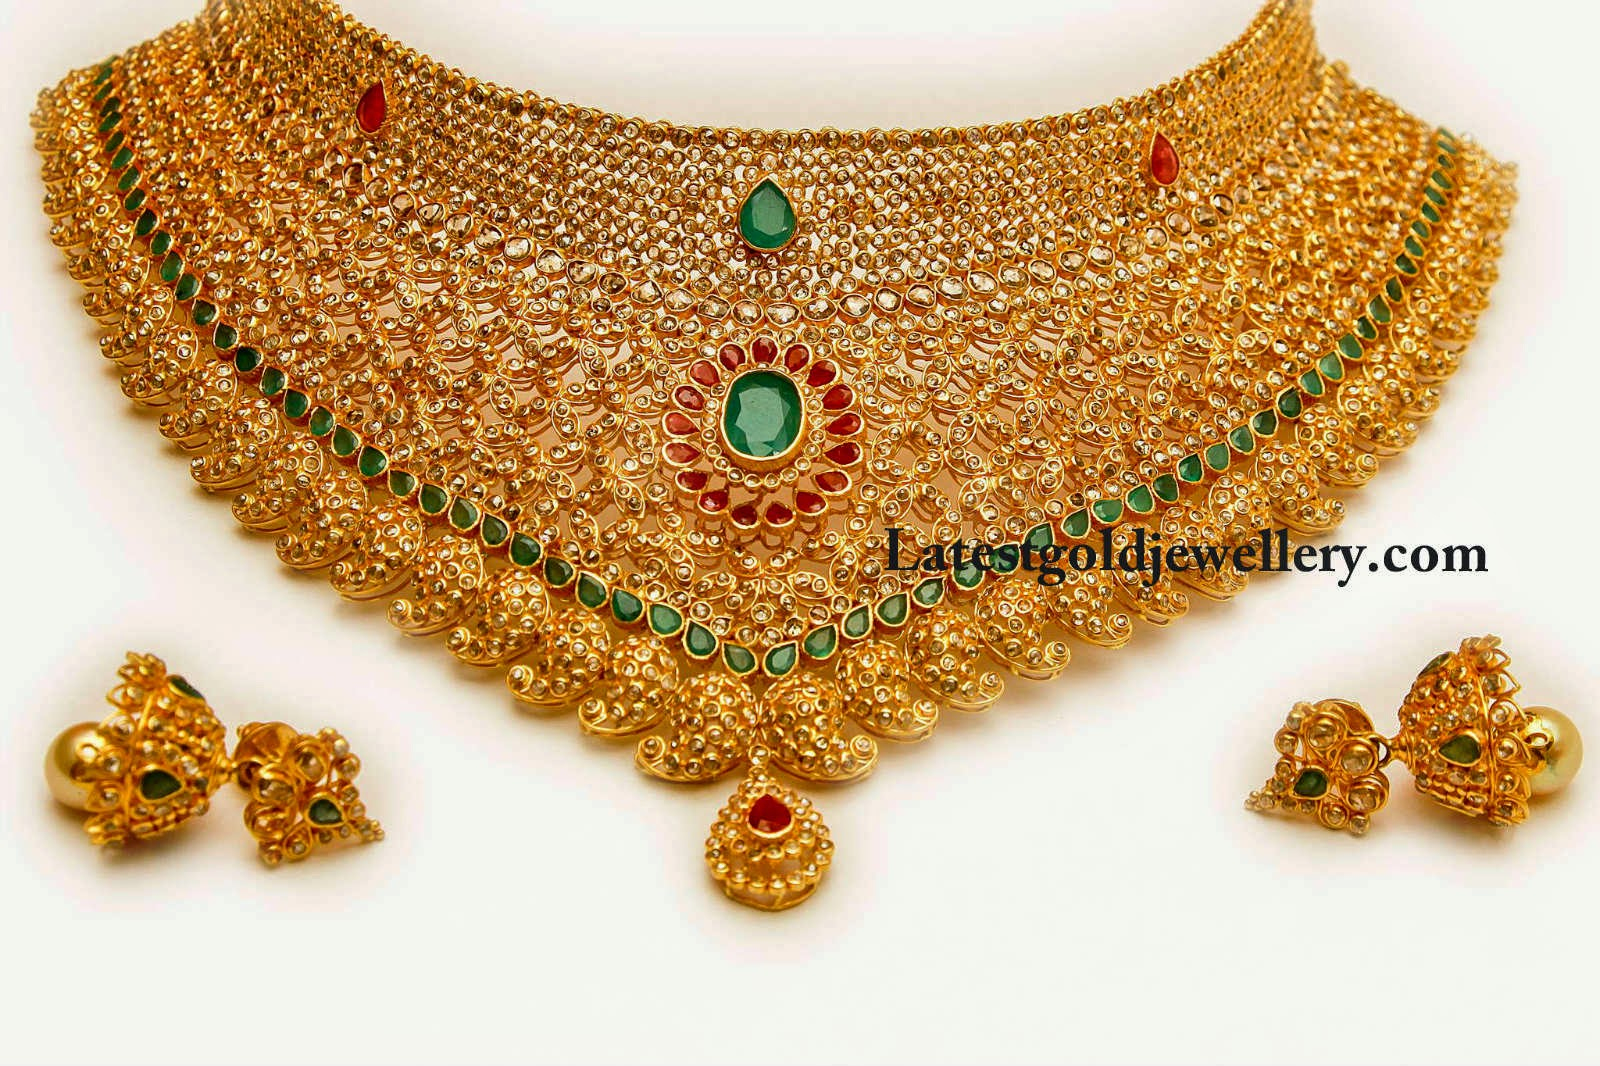 674d3905f2297 Magnificent Uncut Diamond Choker | Latest Gold Jewellery Designs